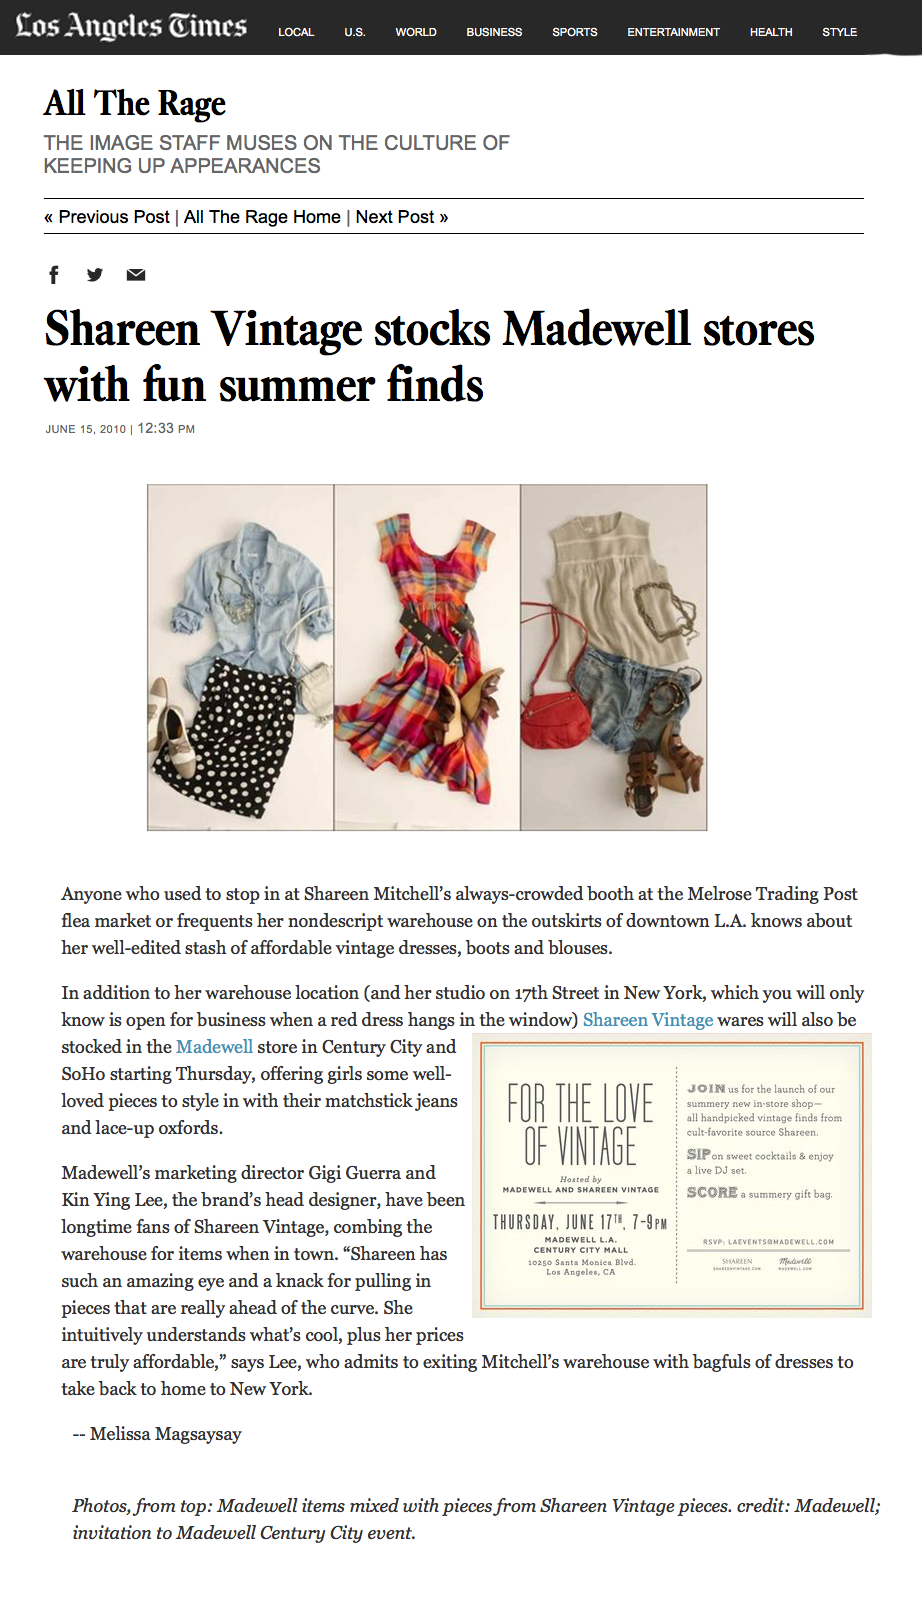 http://latimesblogs.latimes.com/alltherage/2010/06/shareen-vintage-stocks-madewell-stores-with-fun-summer-finds.html